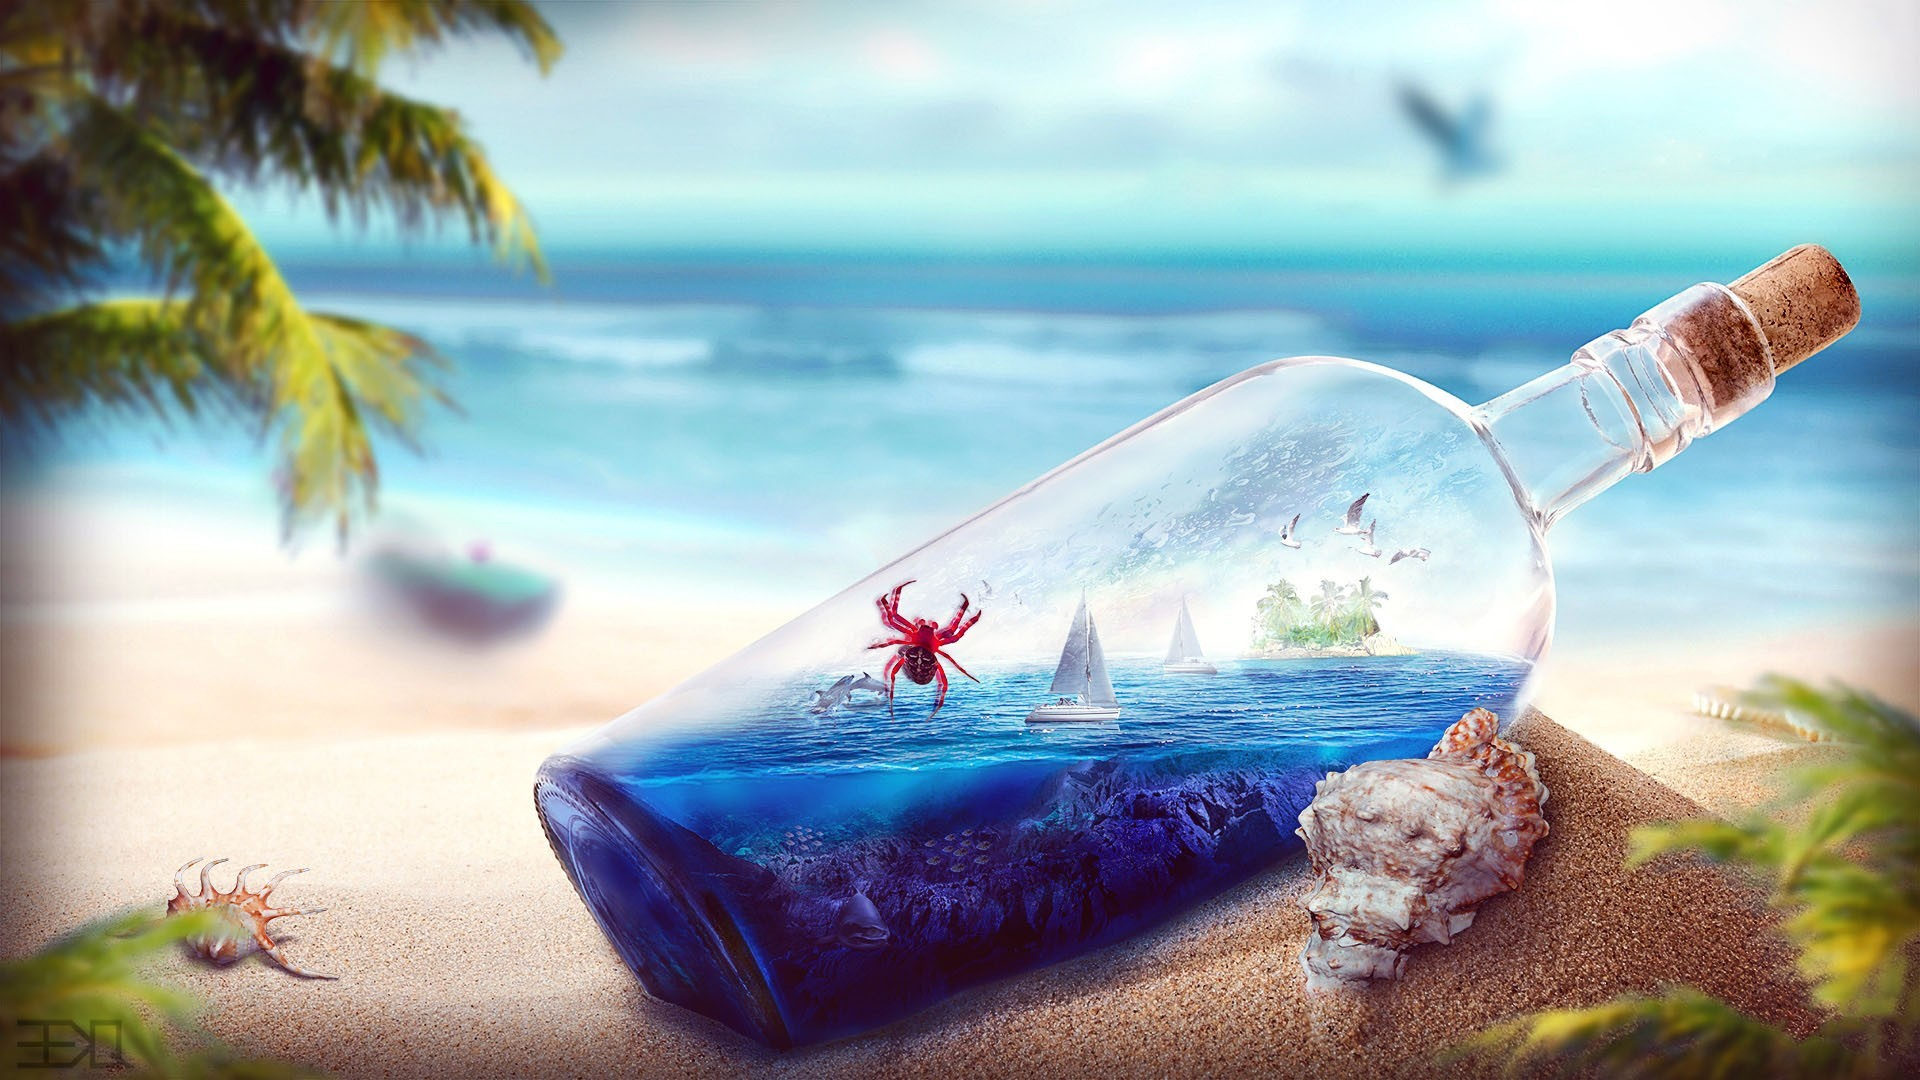 Cool Beach Backgrounds   HD Wallpapers Backgrounds of Your 1920x1080